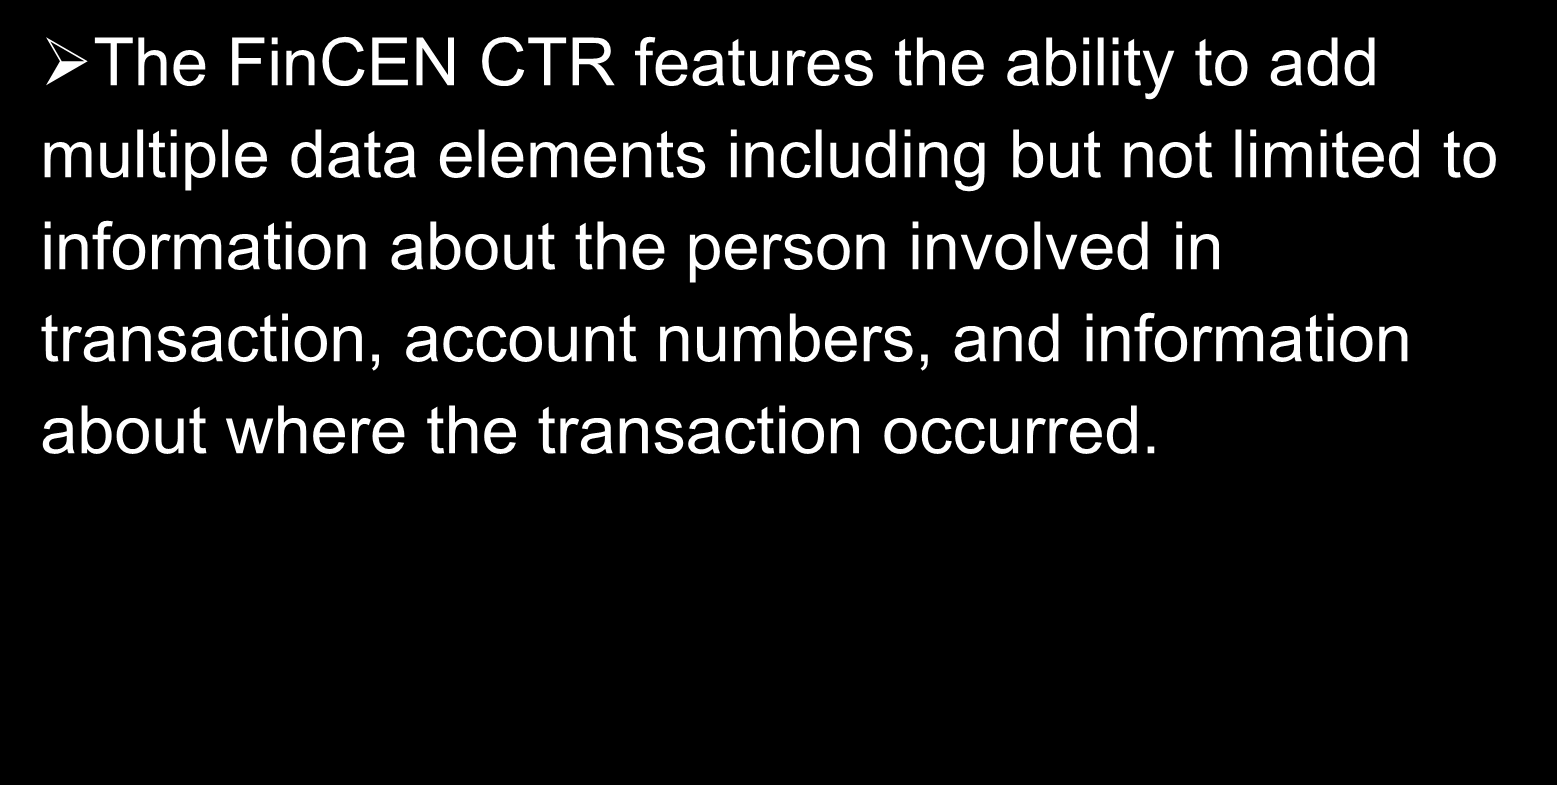 Features and Advantages of the FinCEN CTR The FinCEN CTR features the ability to add multiple data elements including but not